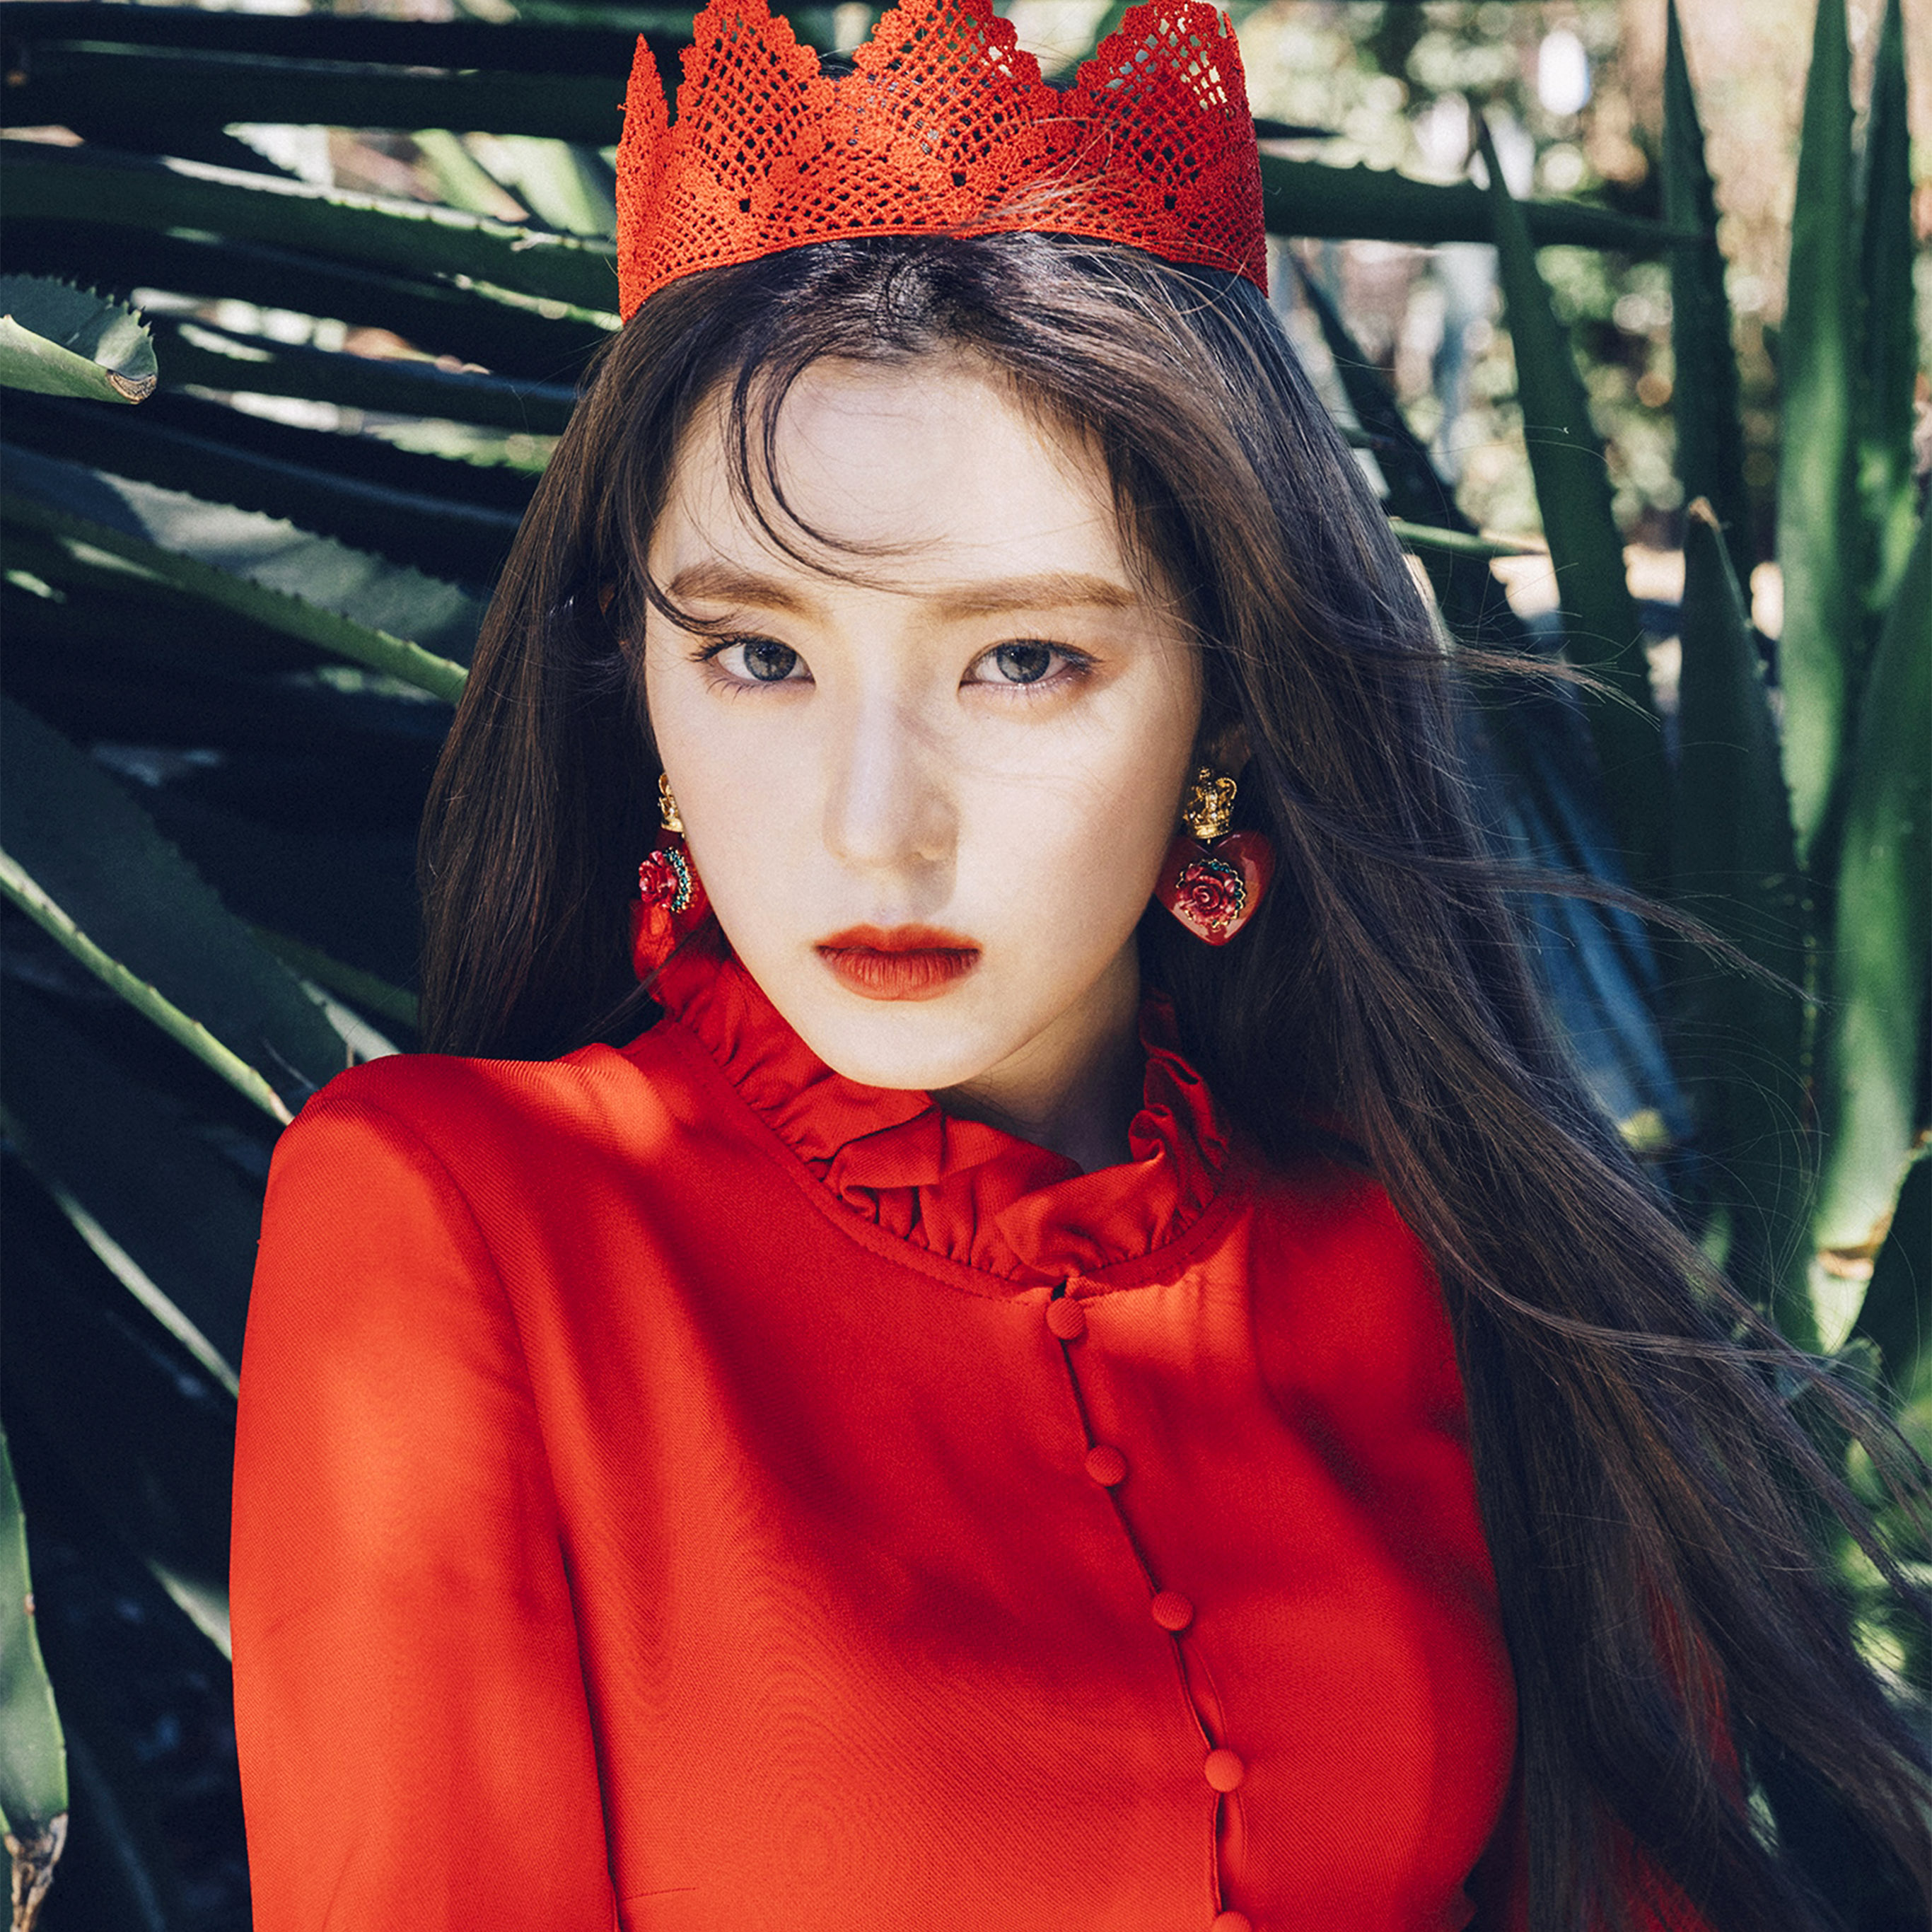 Androidpapers Co Android Wallpaper Ho66 Red Velvet Girl Kpop